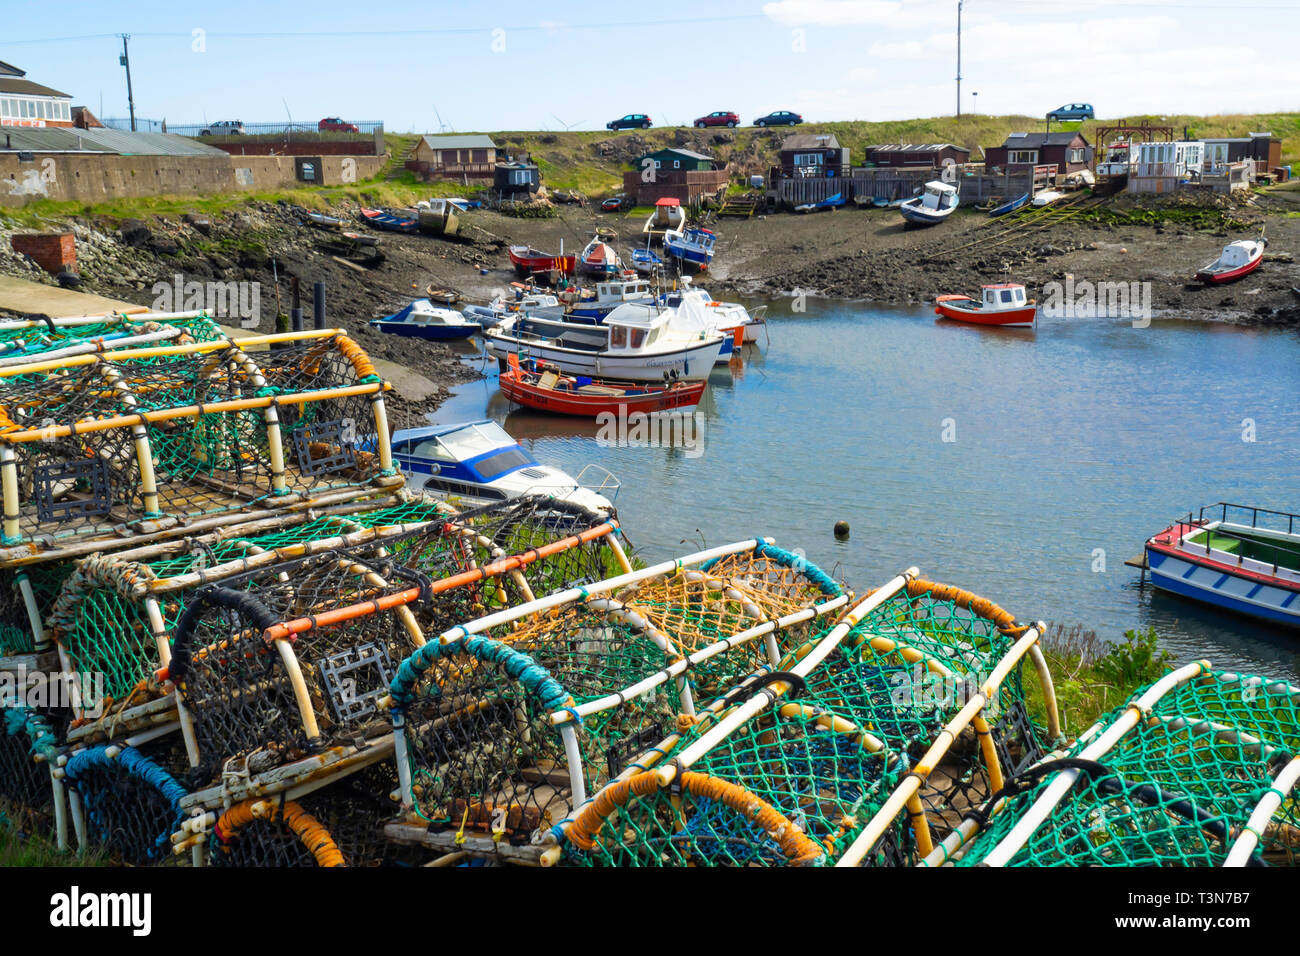 Fishing boats aground at low tide in Paddys Hole Harbour, on a spring day with traditional lobster or crab pots in the foreground at Teesmouth Redcar Stock Photo